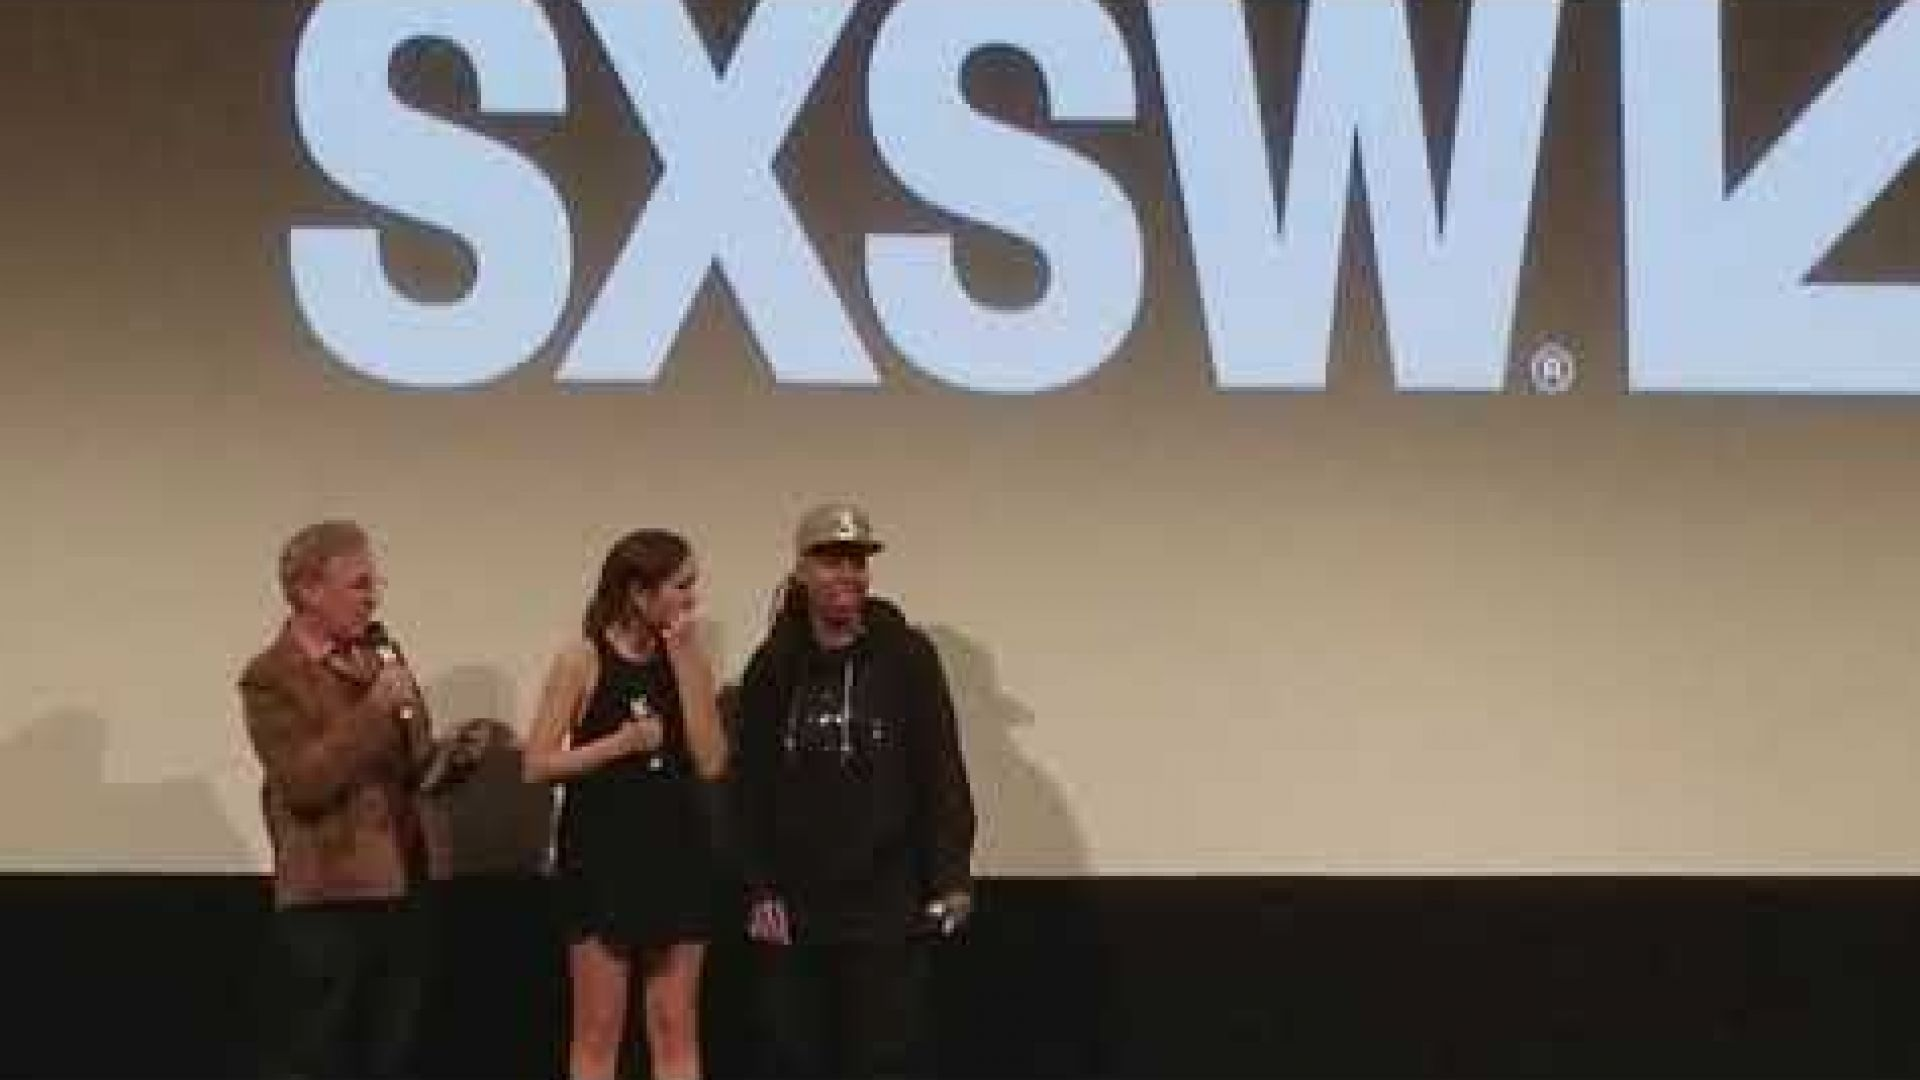 'Ready Player One' SXSW Premiere With Steven Spielberg